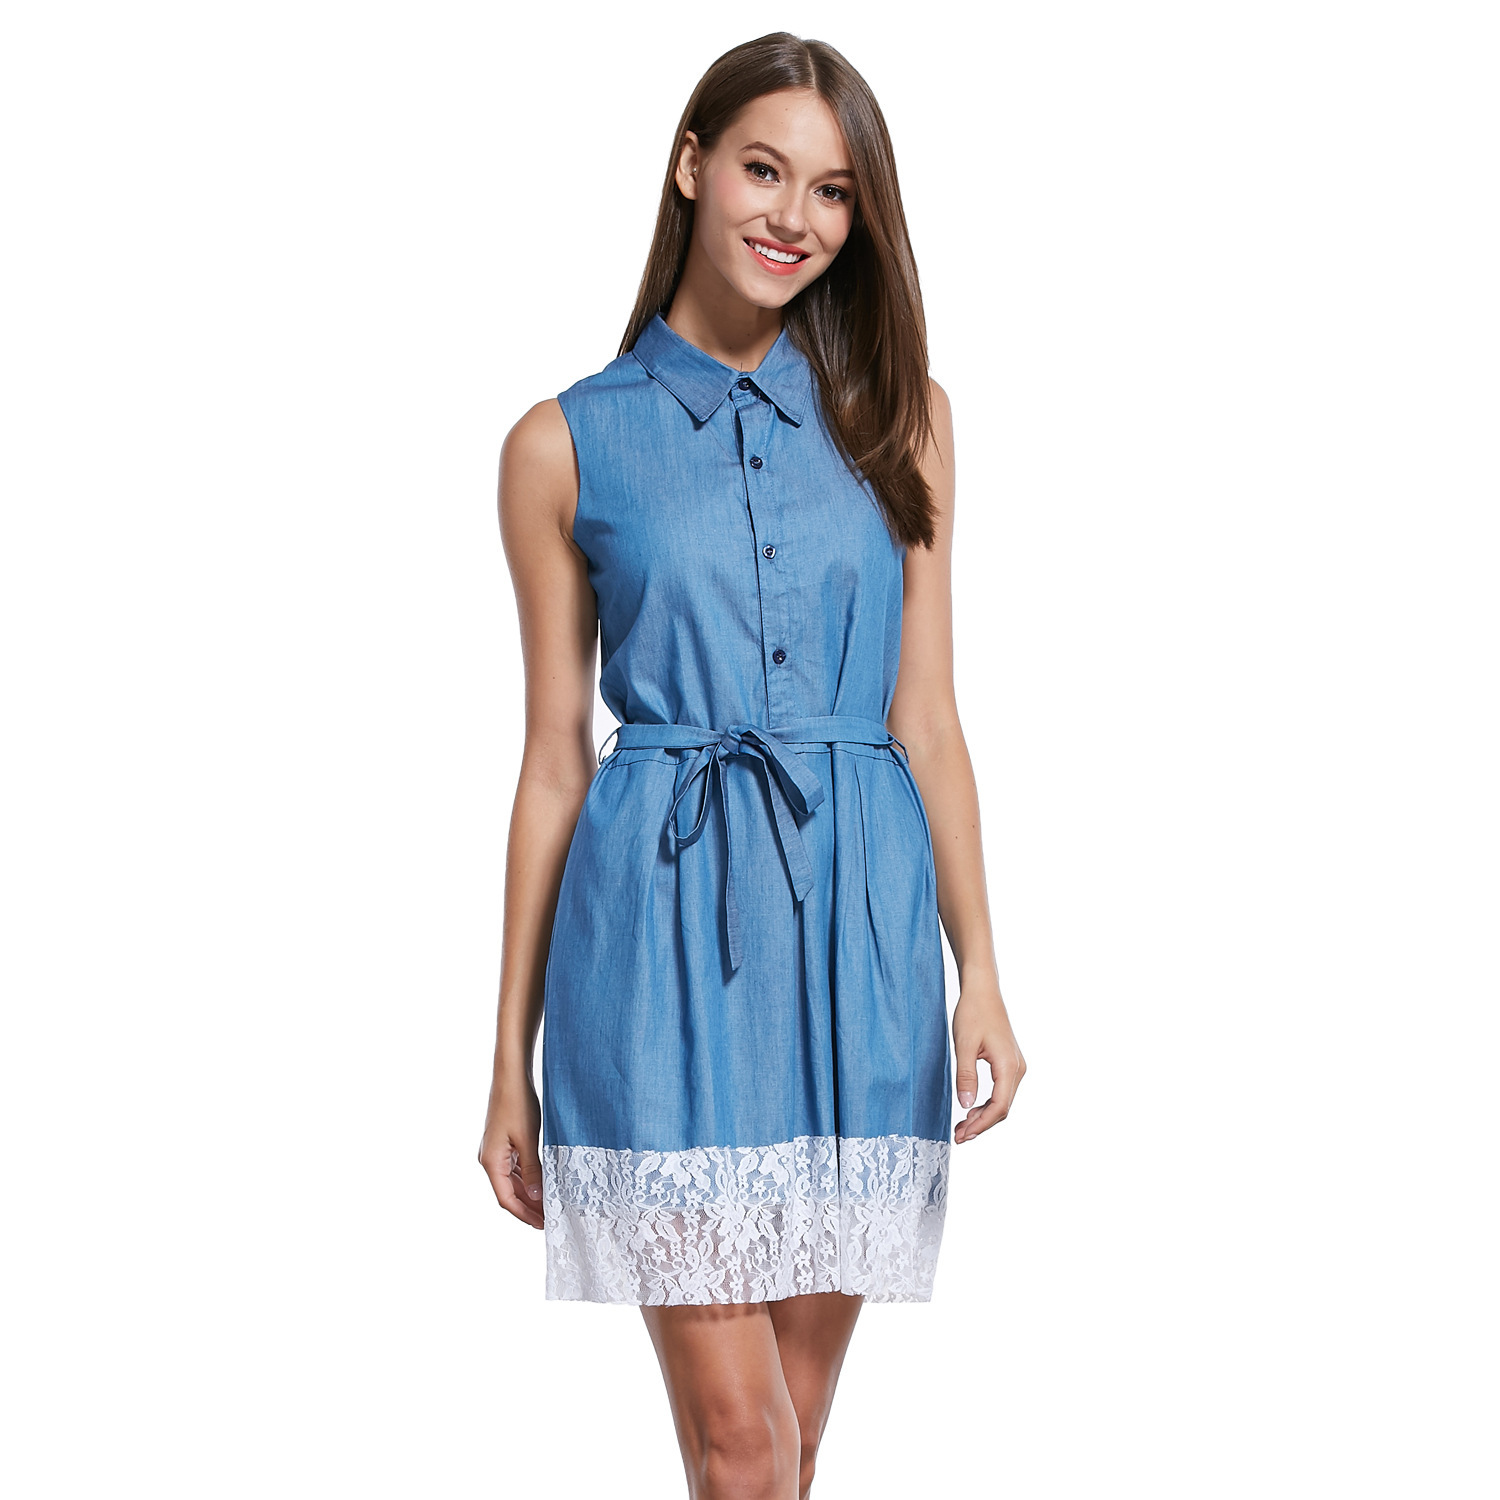 Cute Loose Solid Sleeveless Empire Turn-down Collar Knee-length Sashes Summer Dresses Blue Jeans white Lace Simple Cotton Dress(China (Mainland))